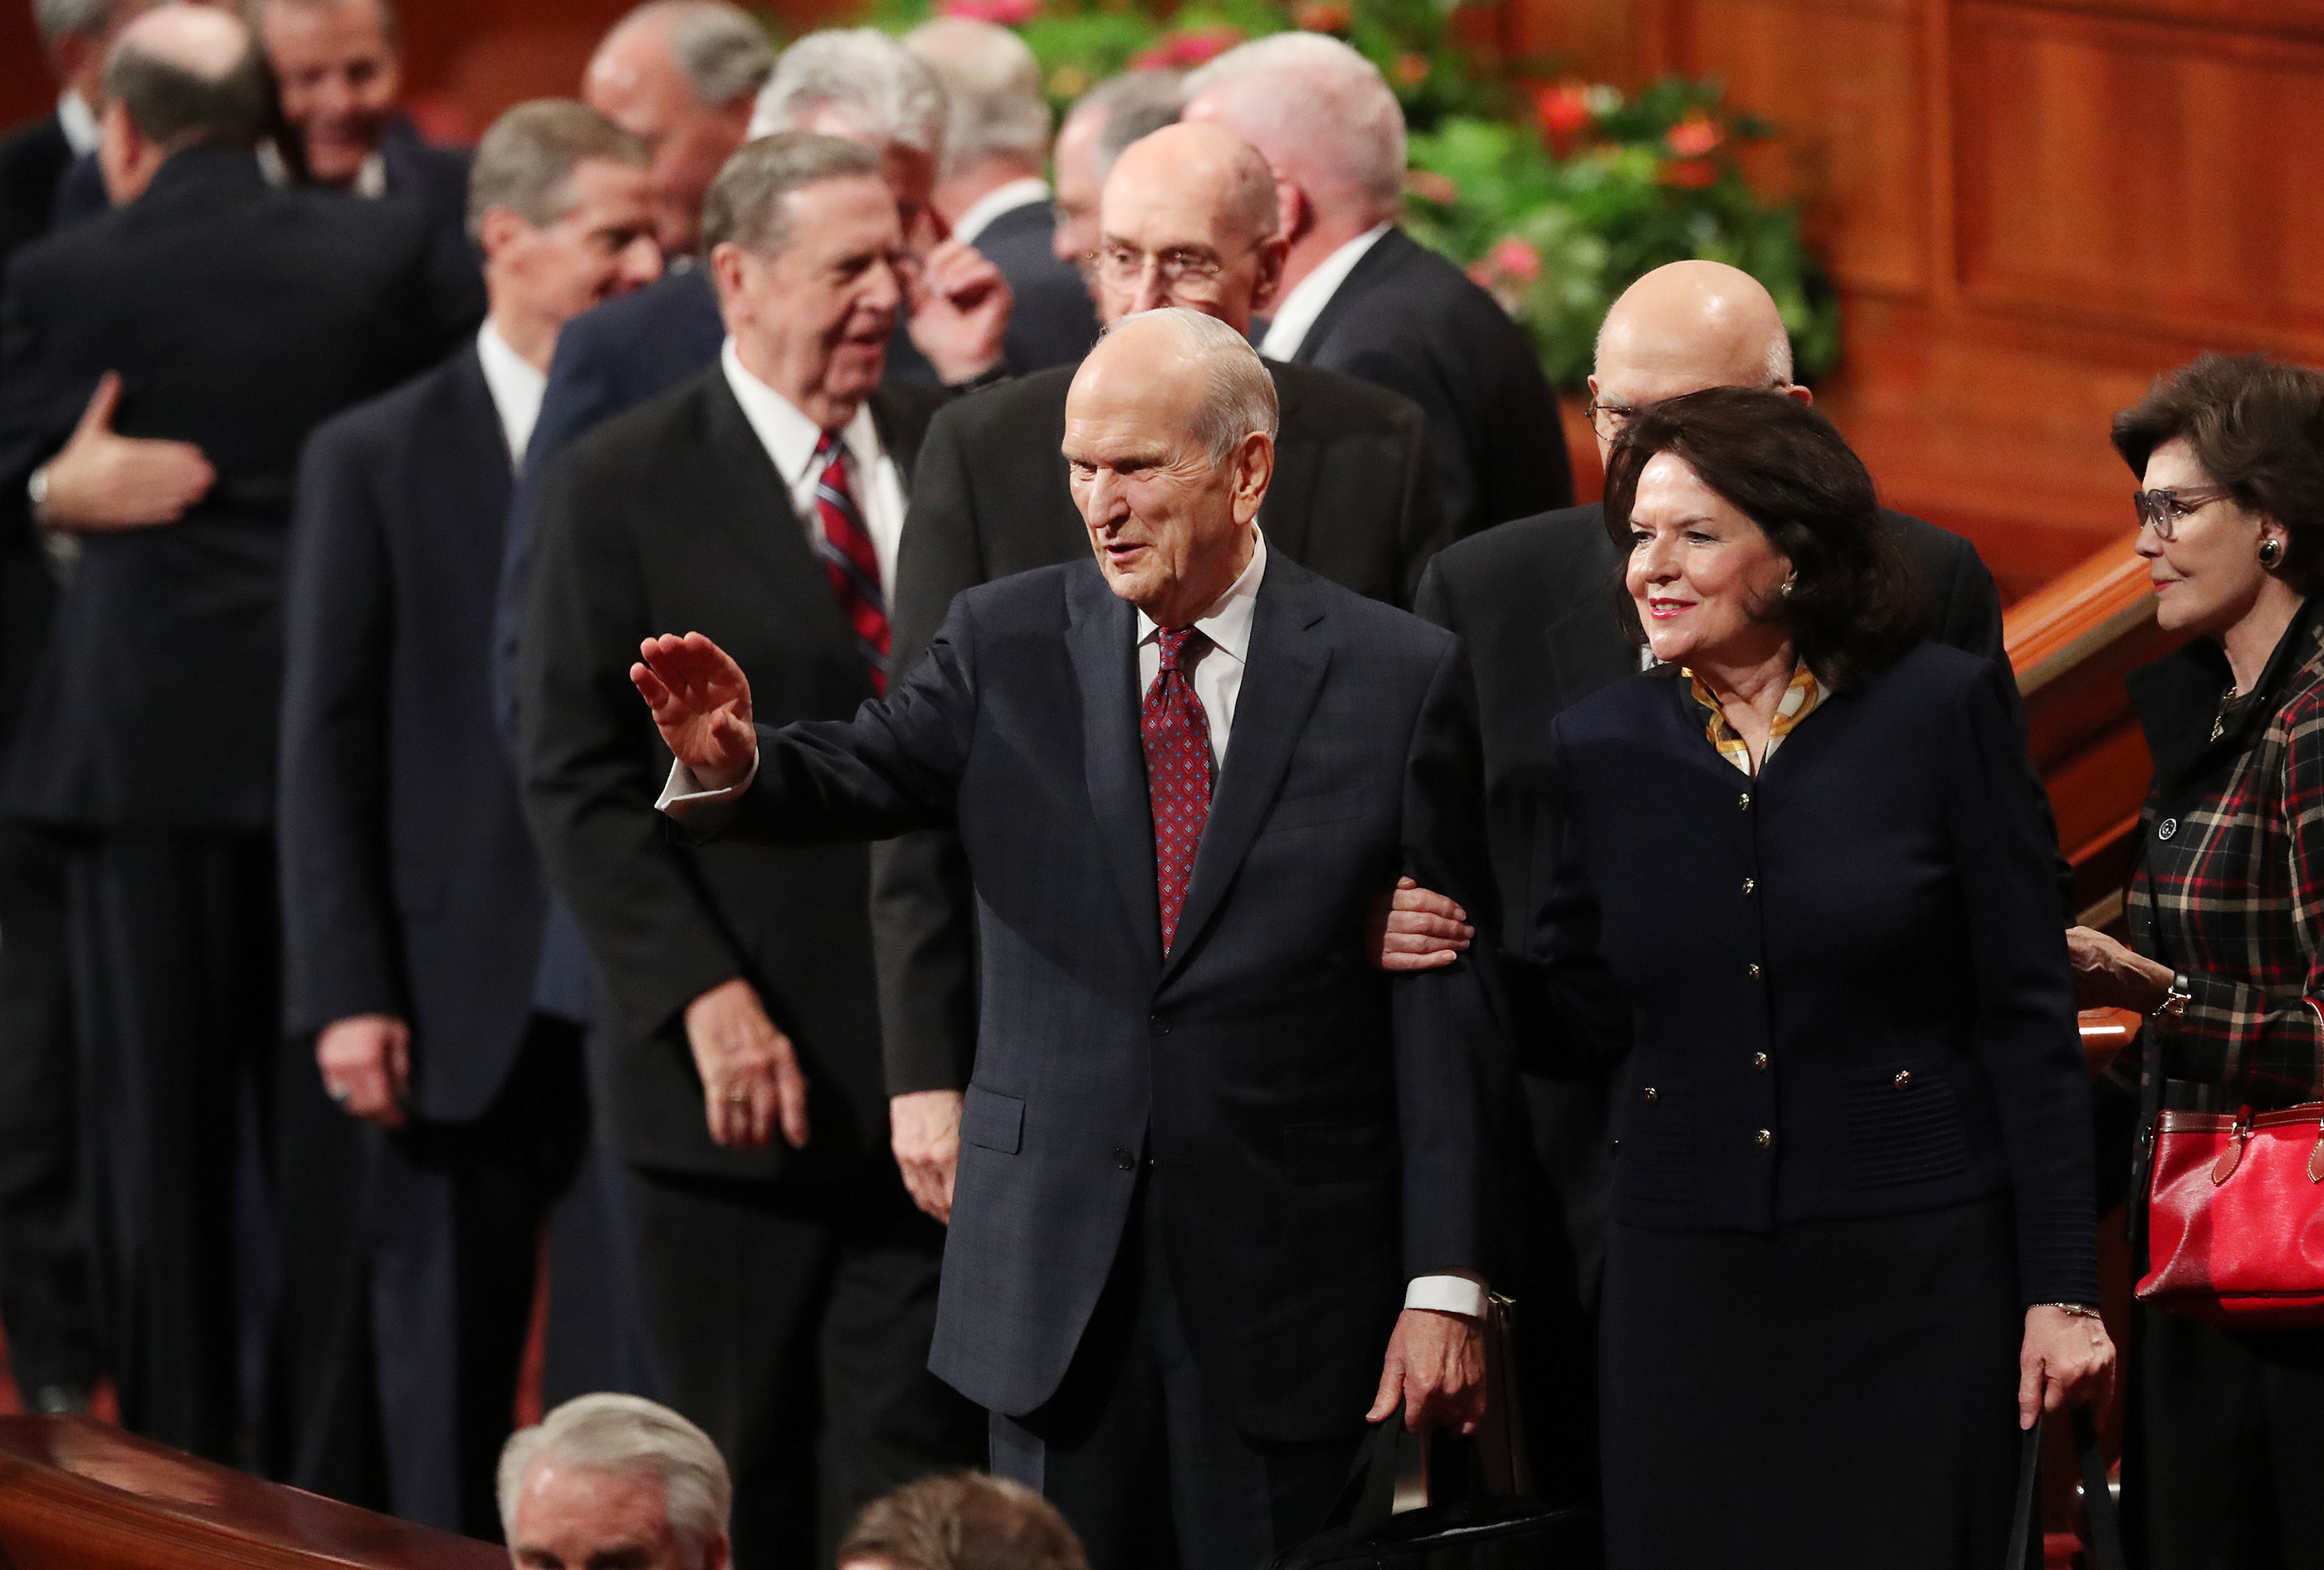 President Russell M. Nelson of The Church of Jesus Christ of Latter-day Saints waves to attendees along with his wife, Sister Wendy Nelson, after the Sunday afternoon session of the 188th Semiannual General Conference of The Church of Jesus Christ of Latter-day Saints in Salt Lake City on Sunday, Oct. 7, 2018.